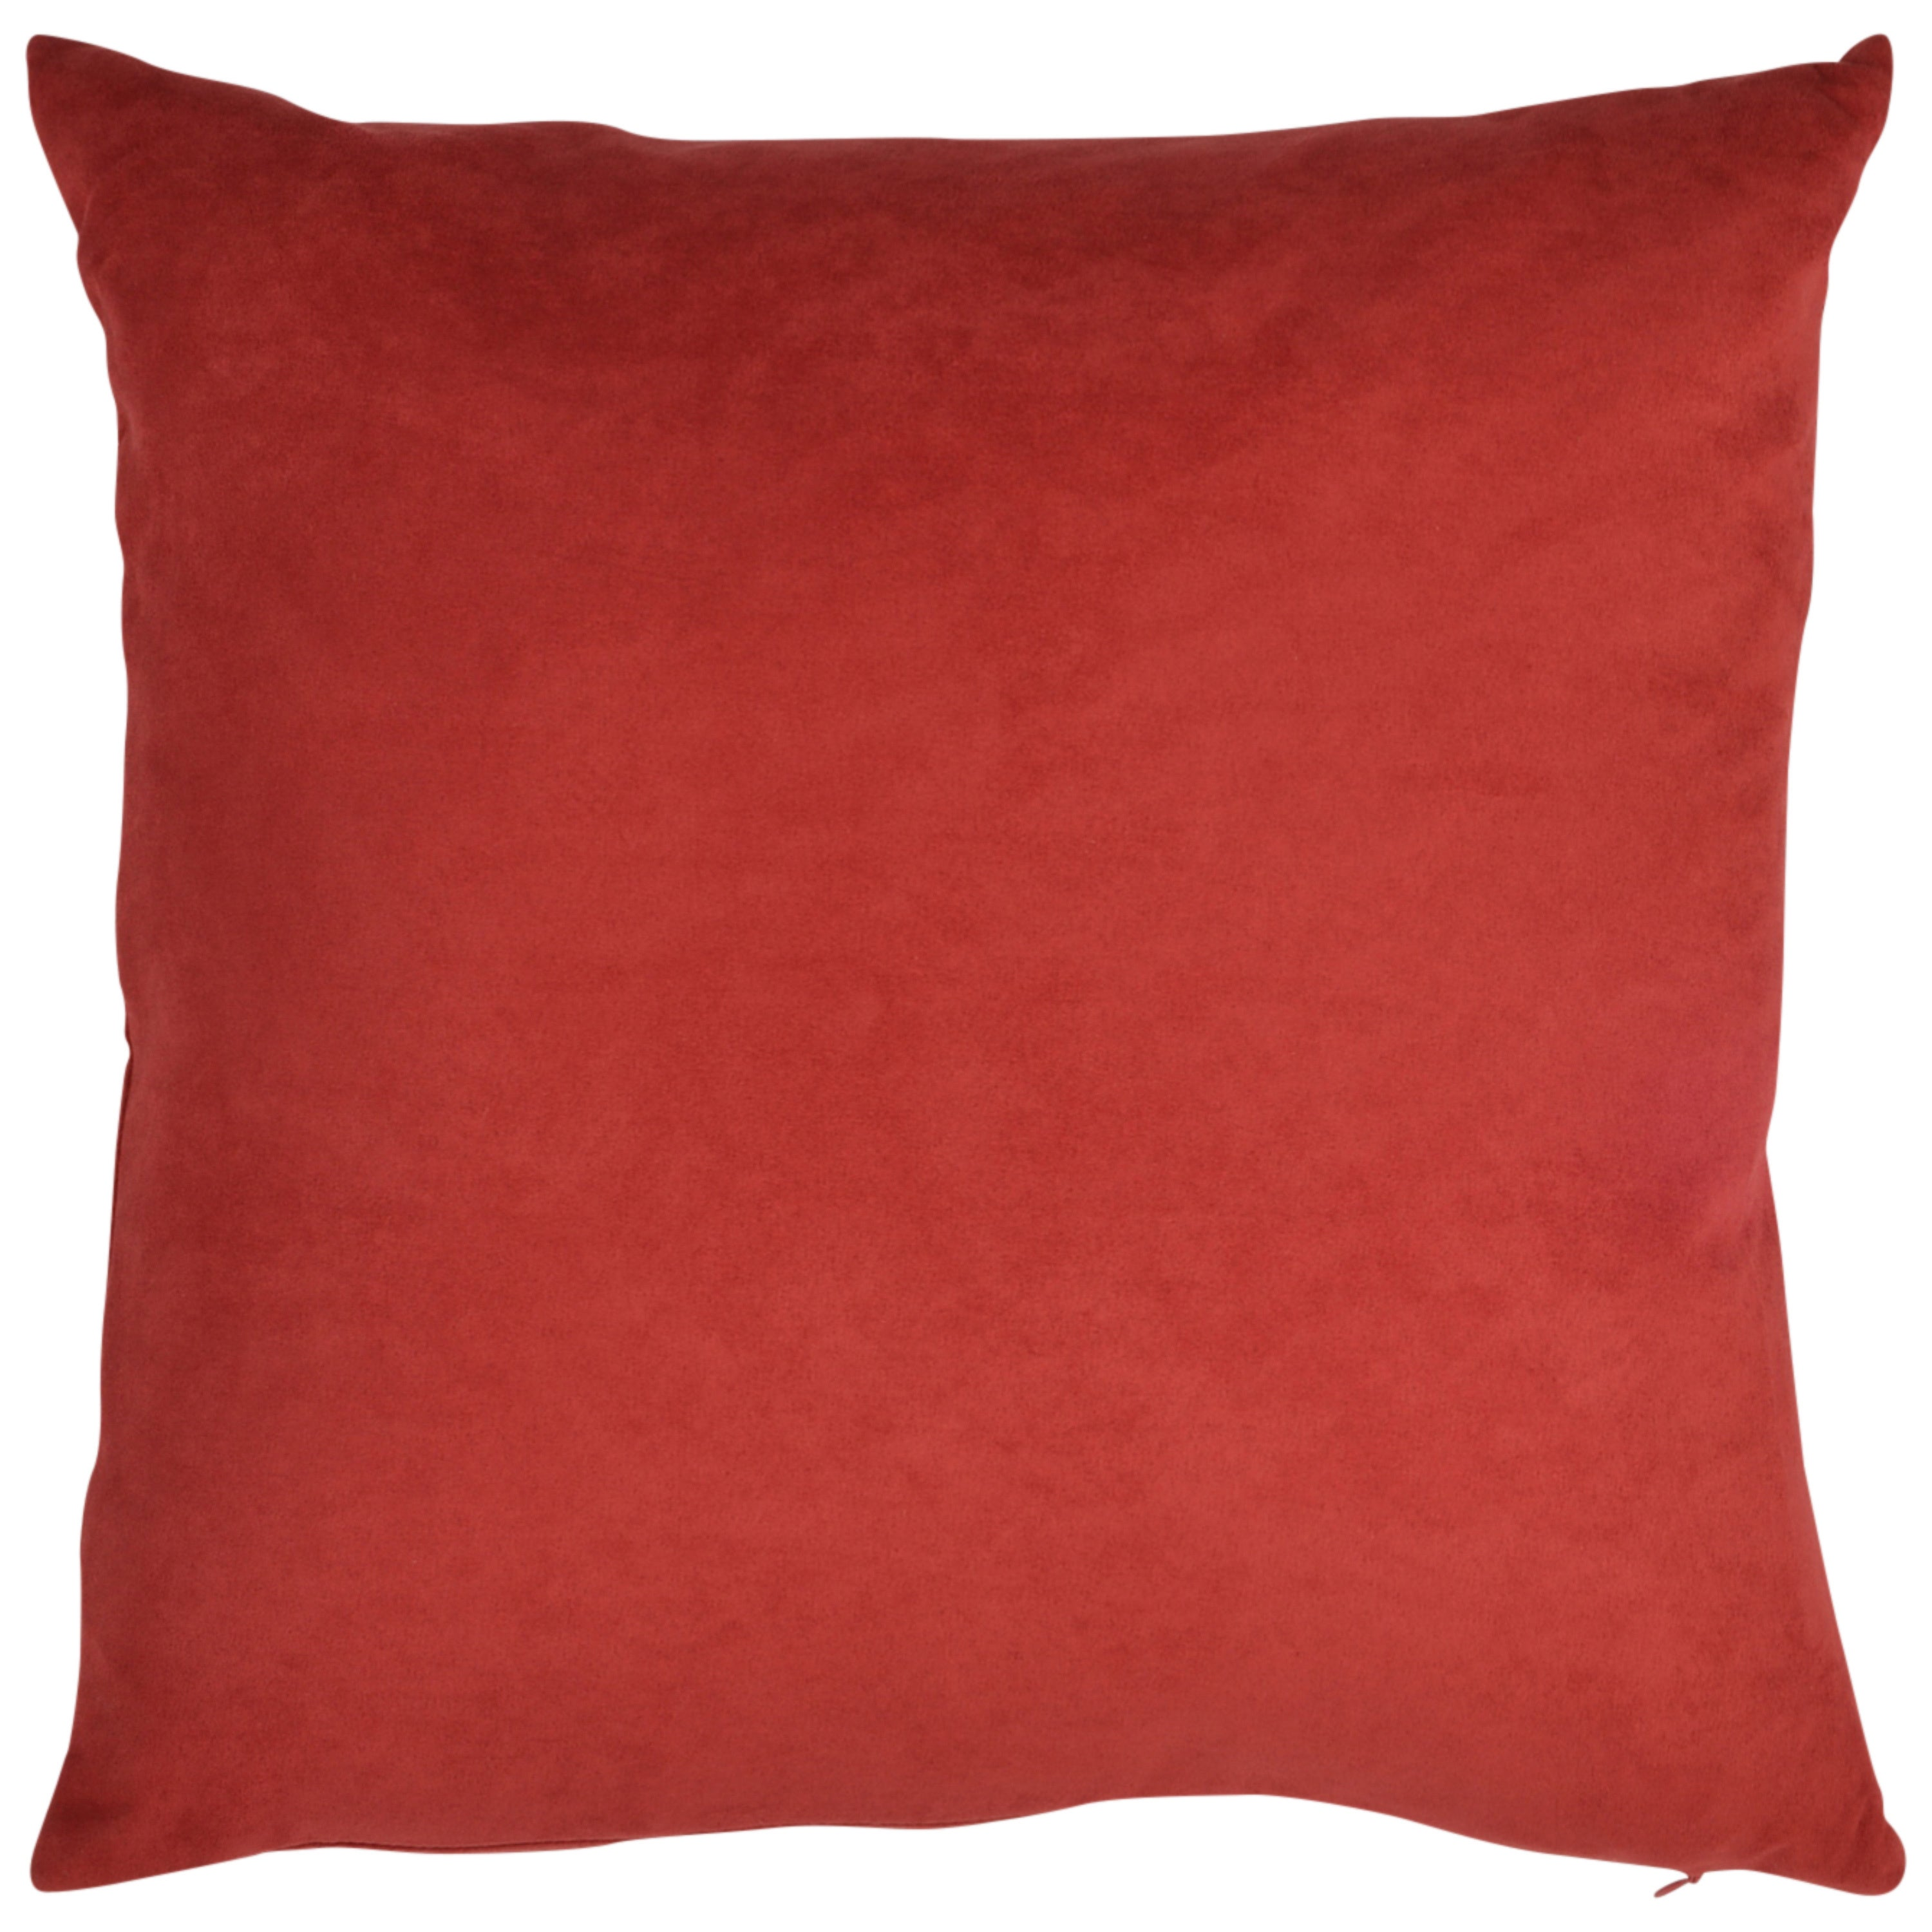 designer with medium flange velvet x pillow throw solid pillows self hand red crafted products